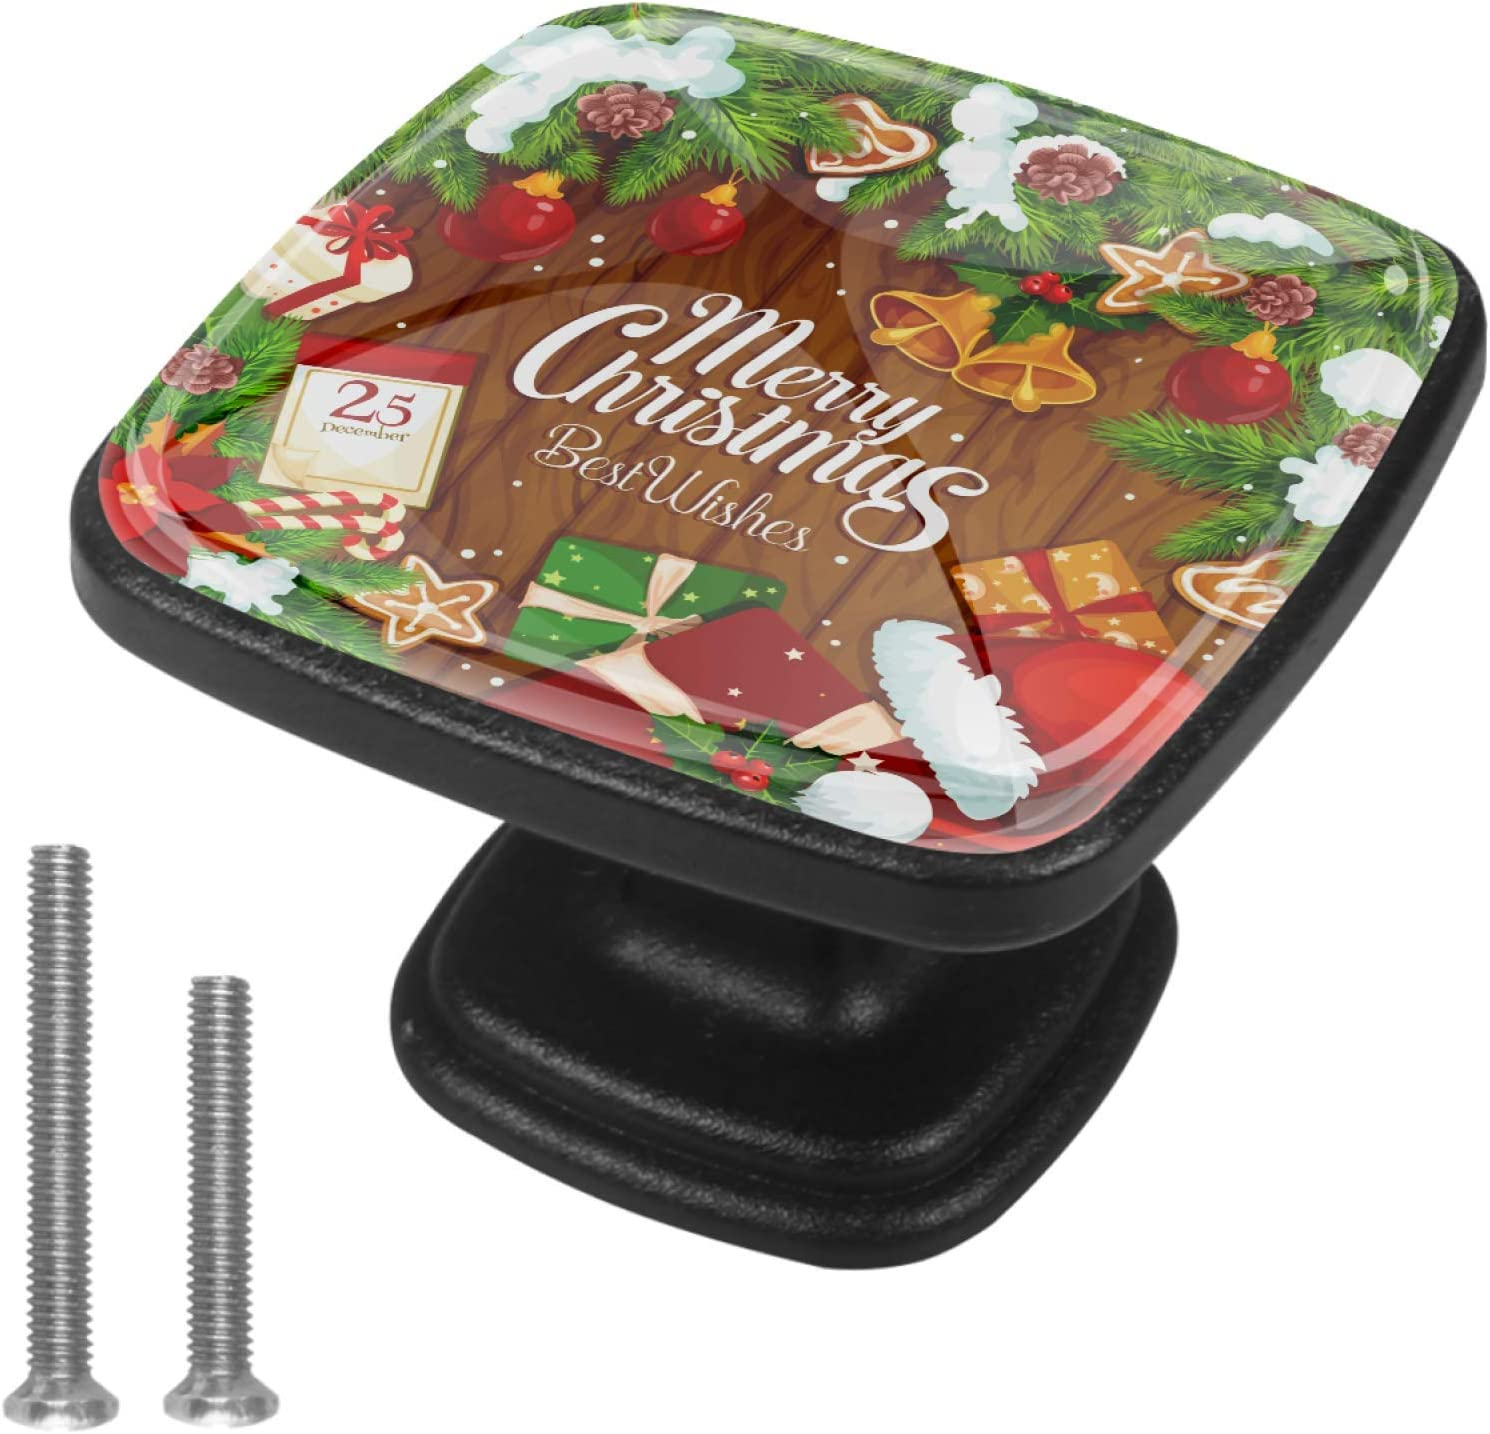 Round Cabinet Bombing new work Hardware Sale special price Knob 4 Pack - Gift and Santa Ball a hat